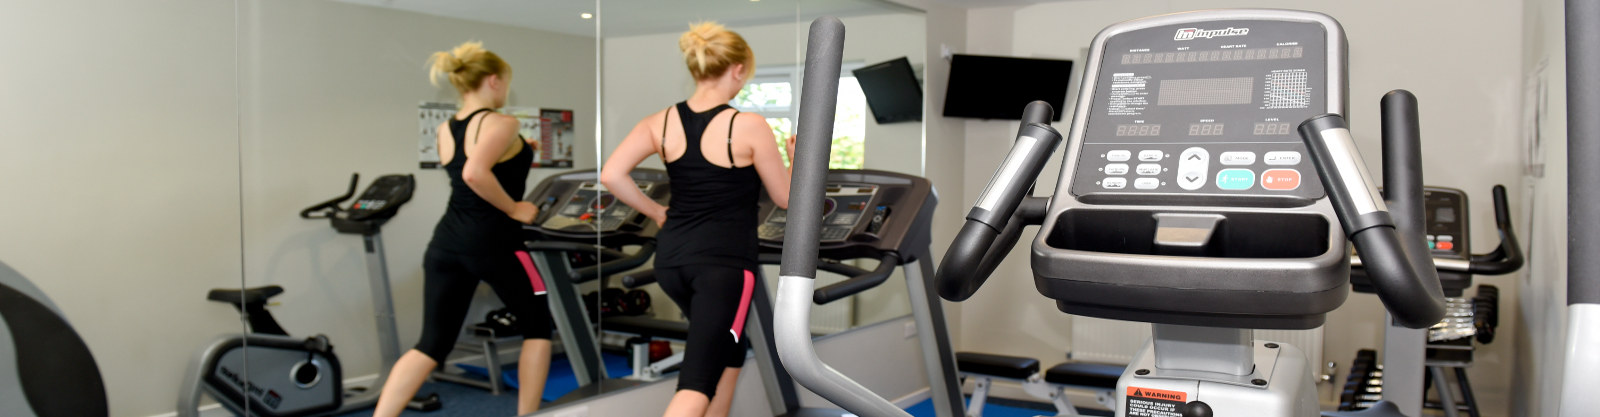 Fitness & Leisure Club Bournemouth